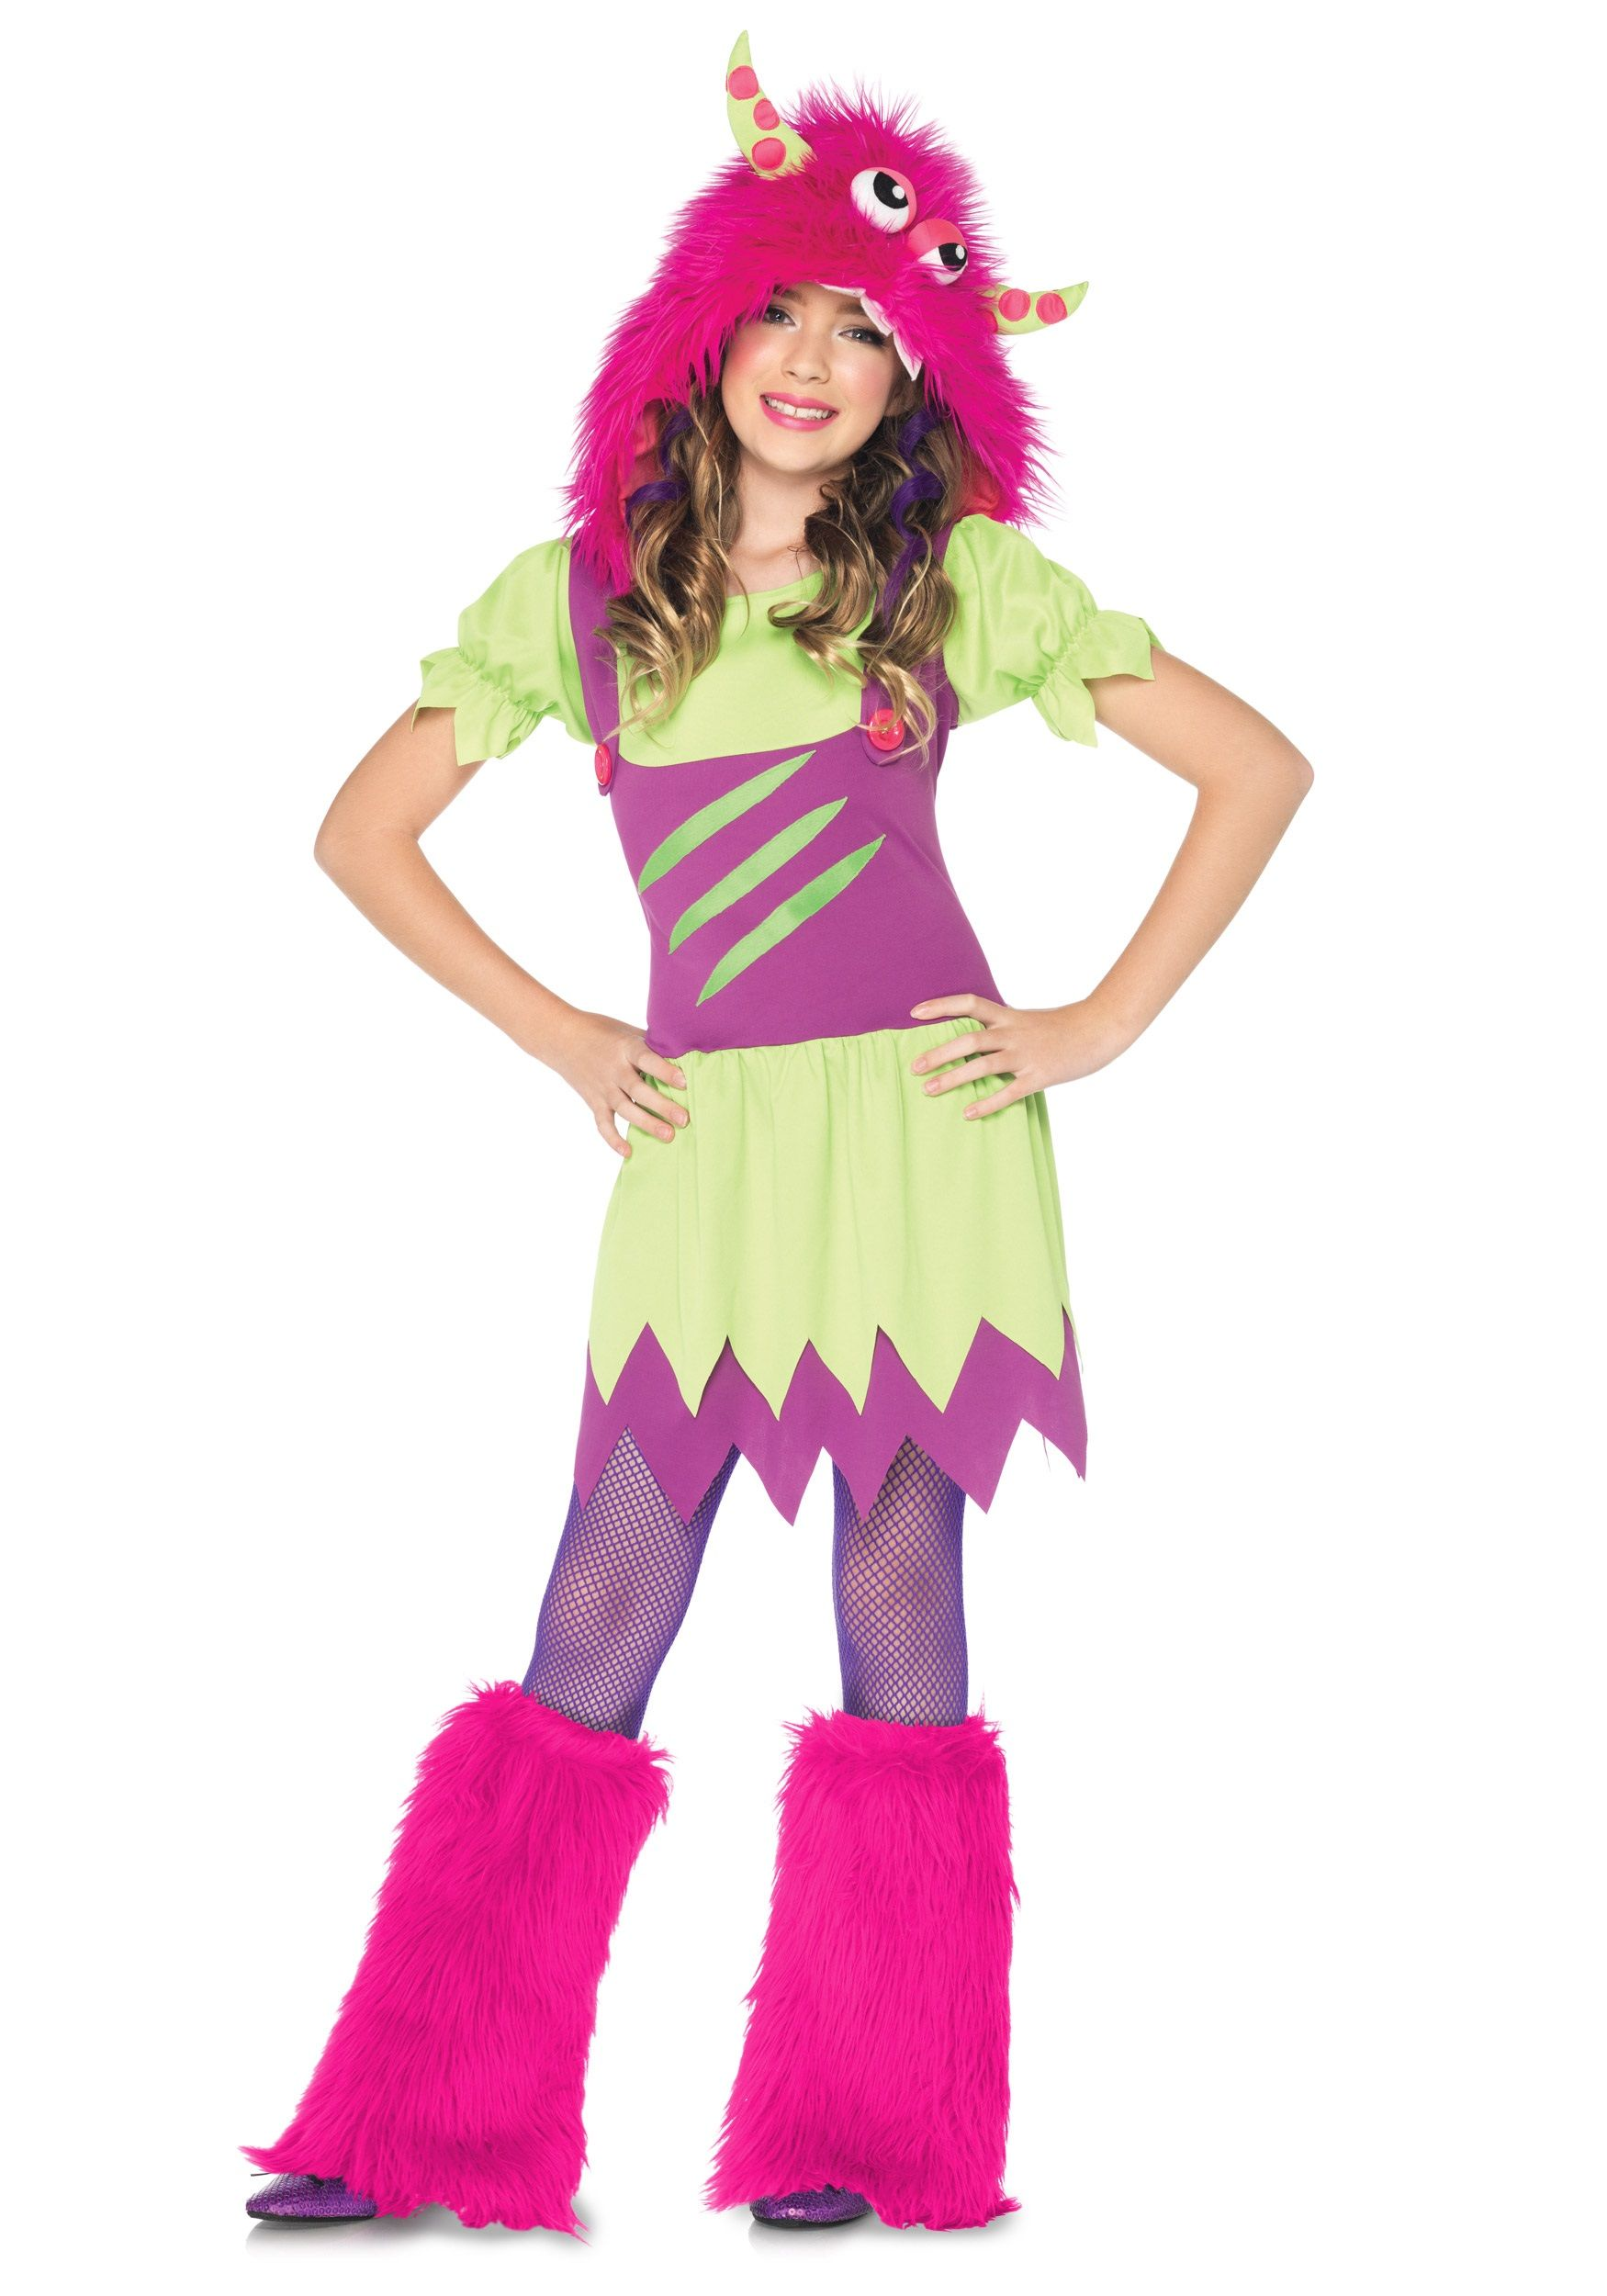 cute girl costume ideas | Girls Fuzzy Wuzzy Cute Monster Costume ...